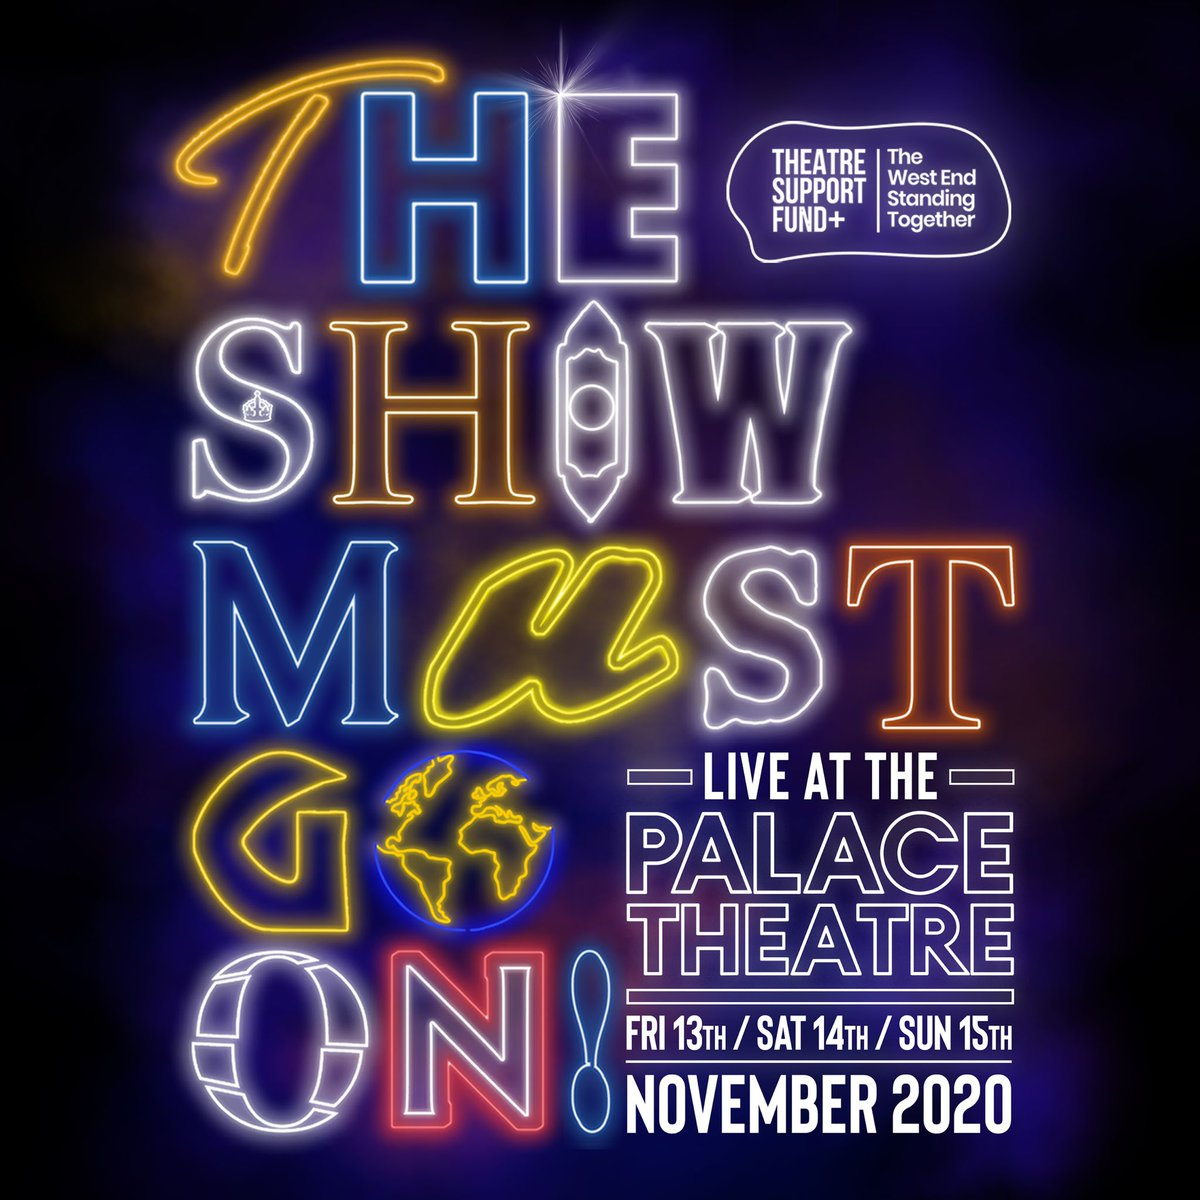 We are thrilled to announce THE SHOW MUST GO ON! LIVE AT THE PALACE THEATRE this Nov, Fri 13 – Sun 15! All profits from concert going to @actingforothers and #fleabagforcharity     #theshowmustgoon #thewestendstandingtogether #liveathepalace